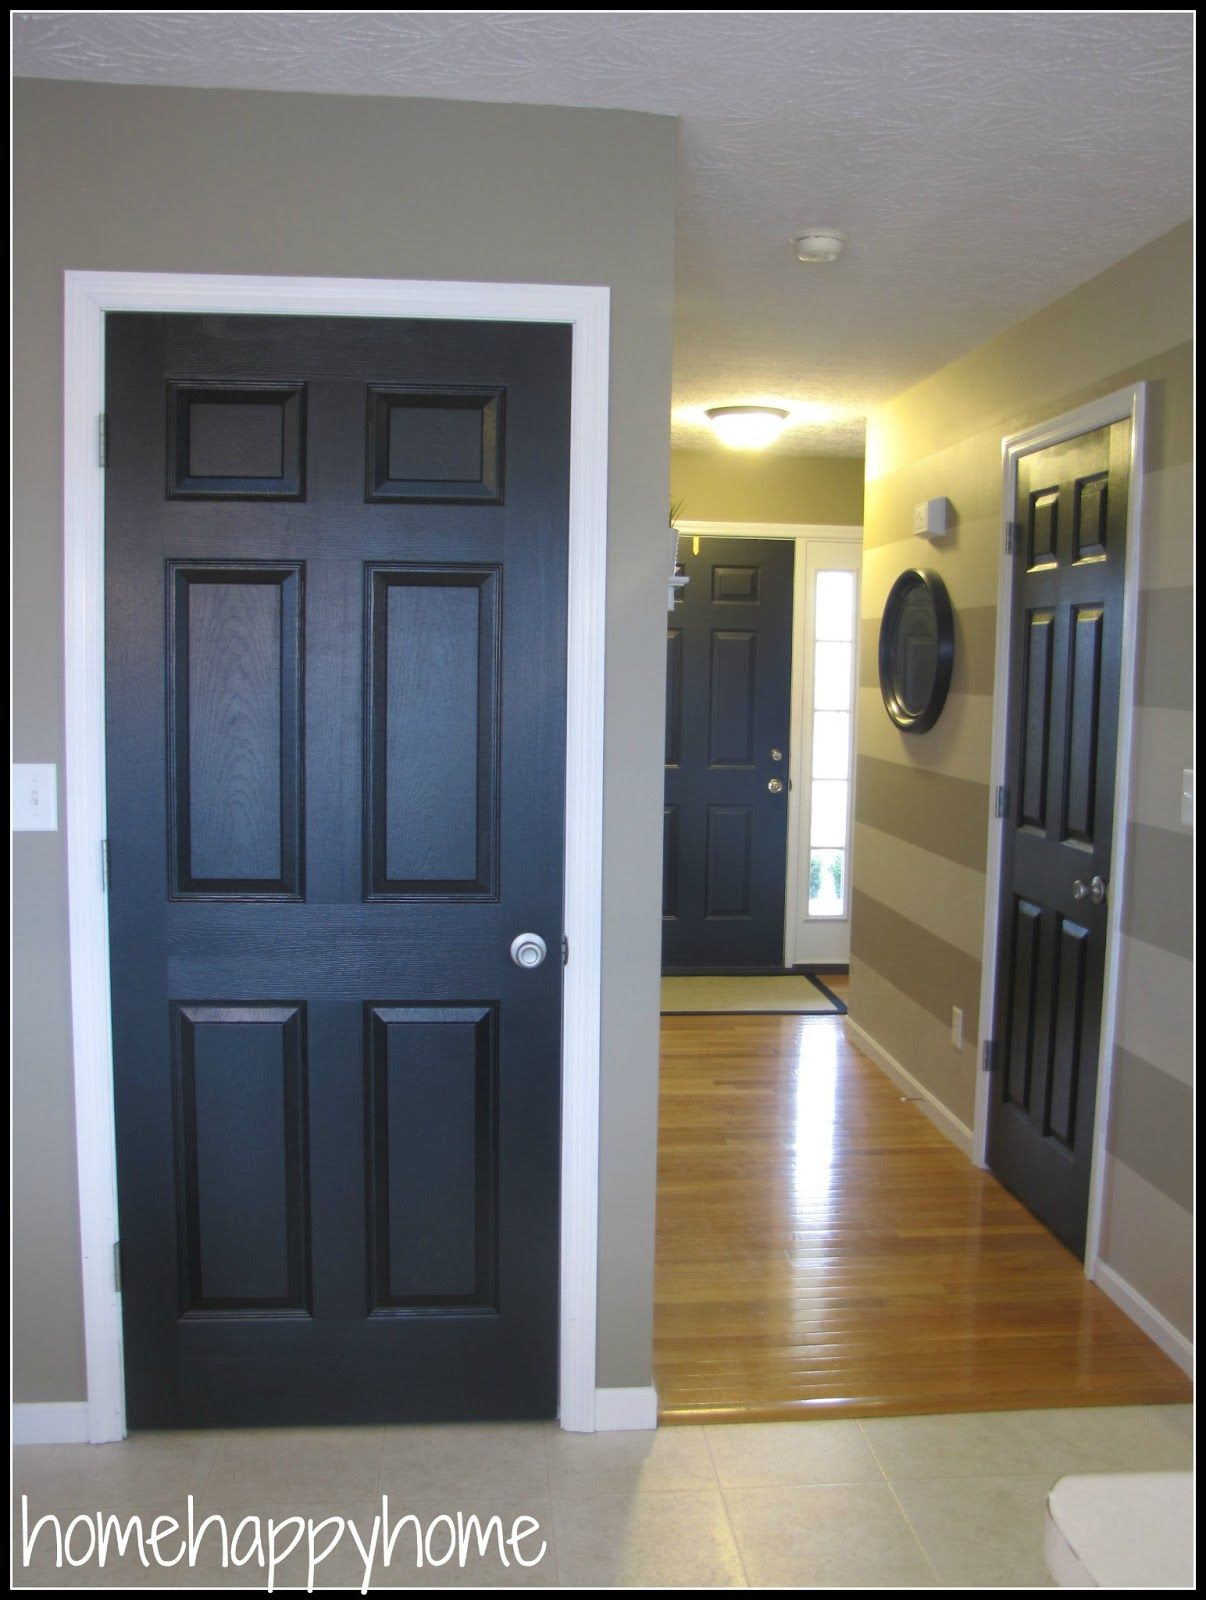 Home happy home black painted interior doors paint for Black interior paint